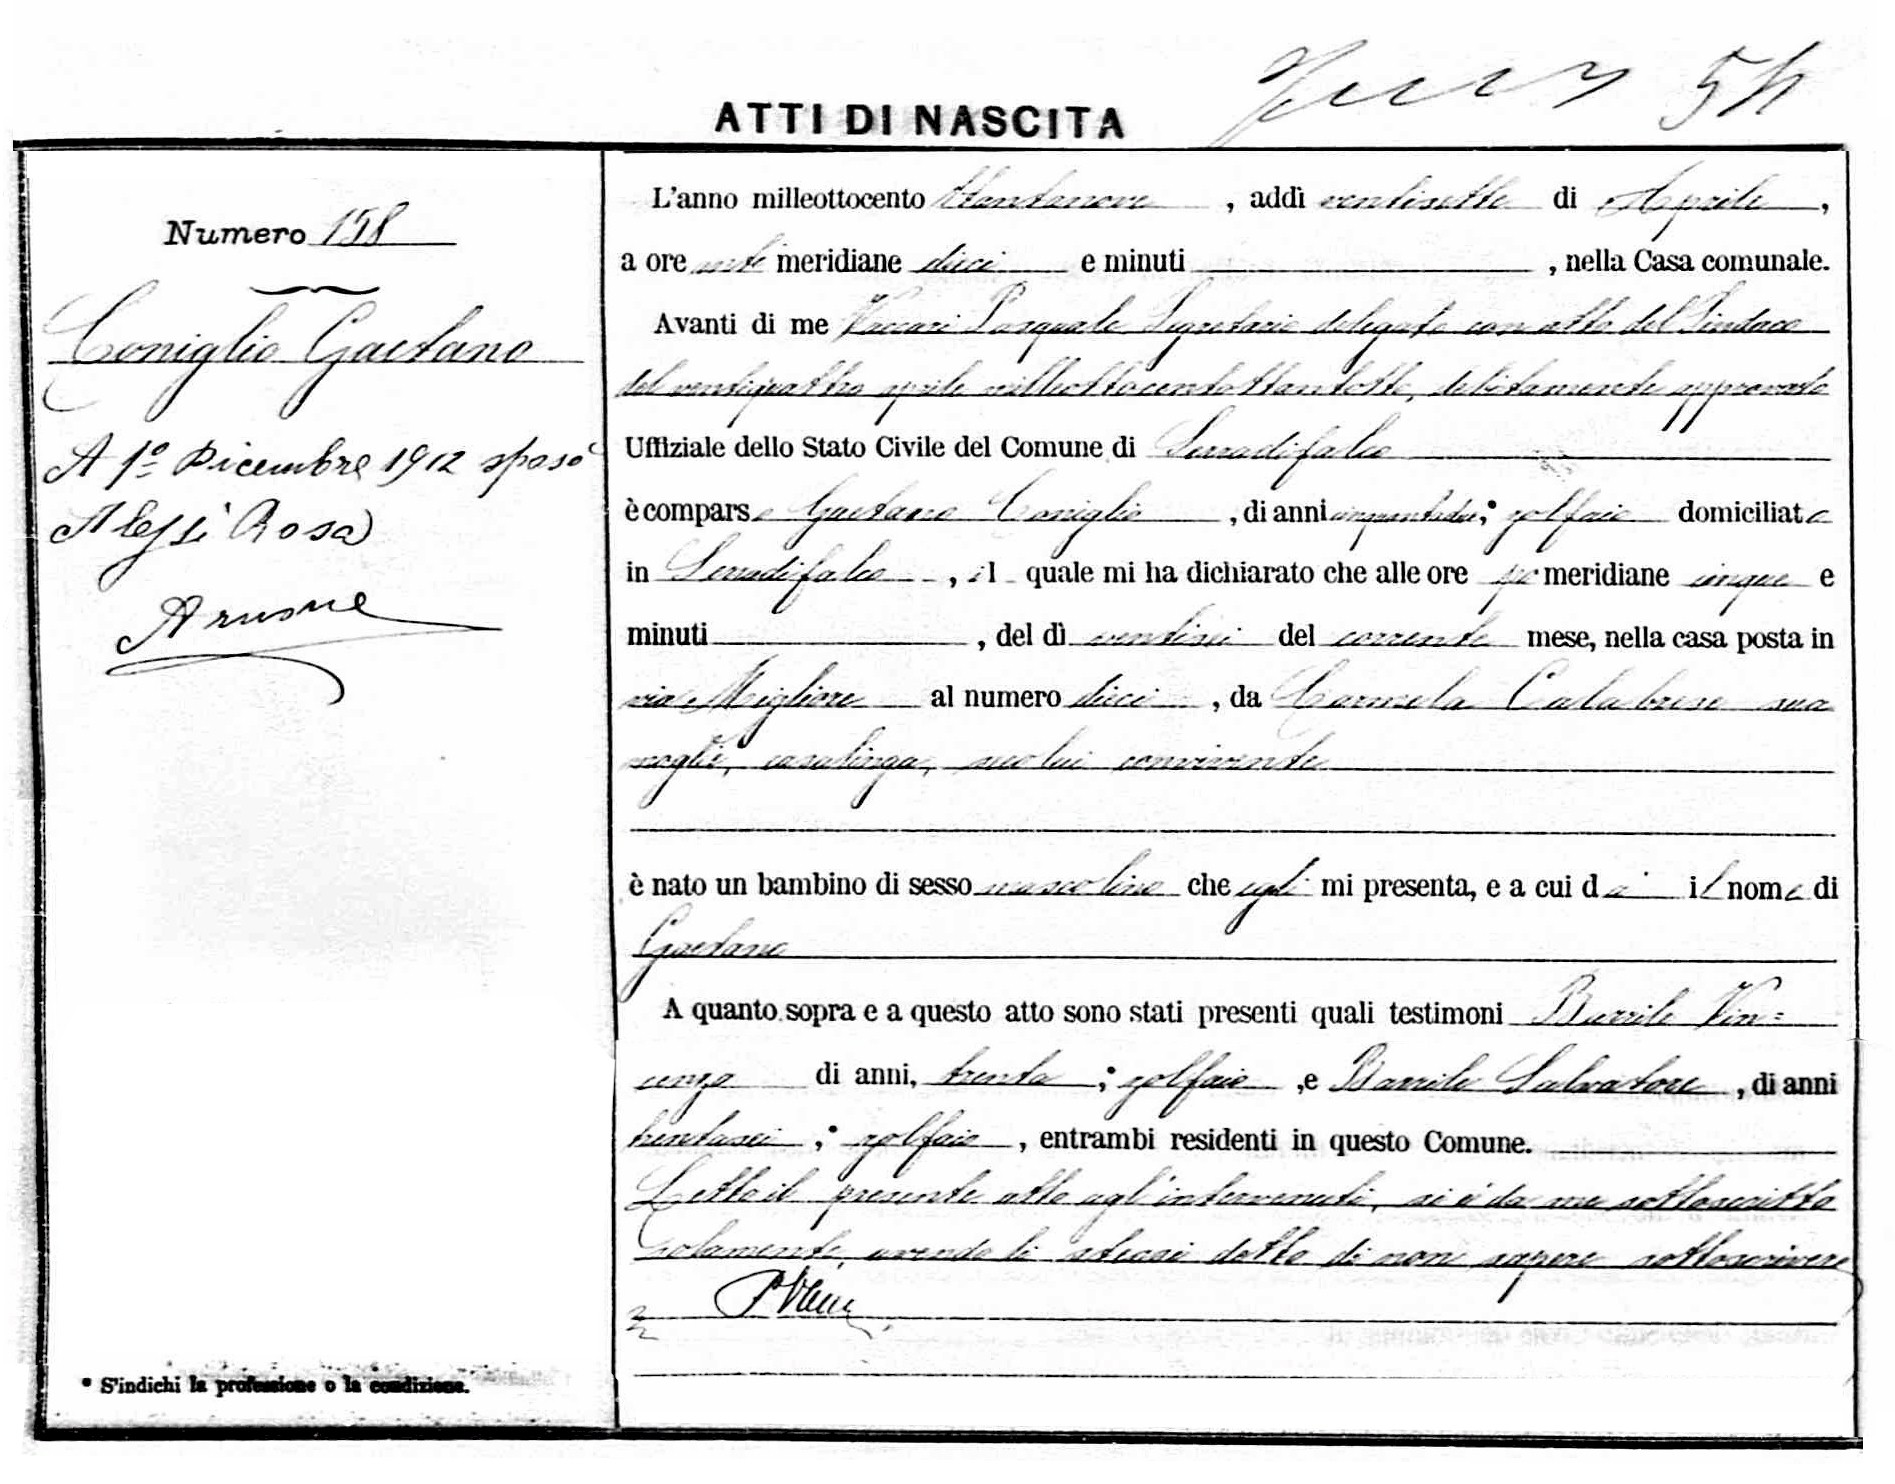 find birth record sicily italy